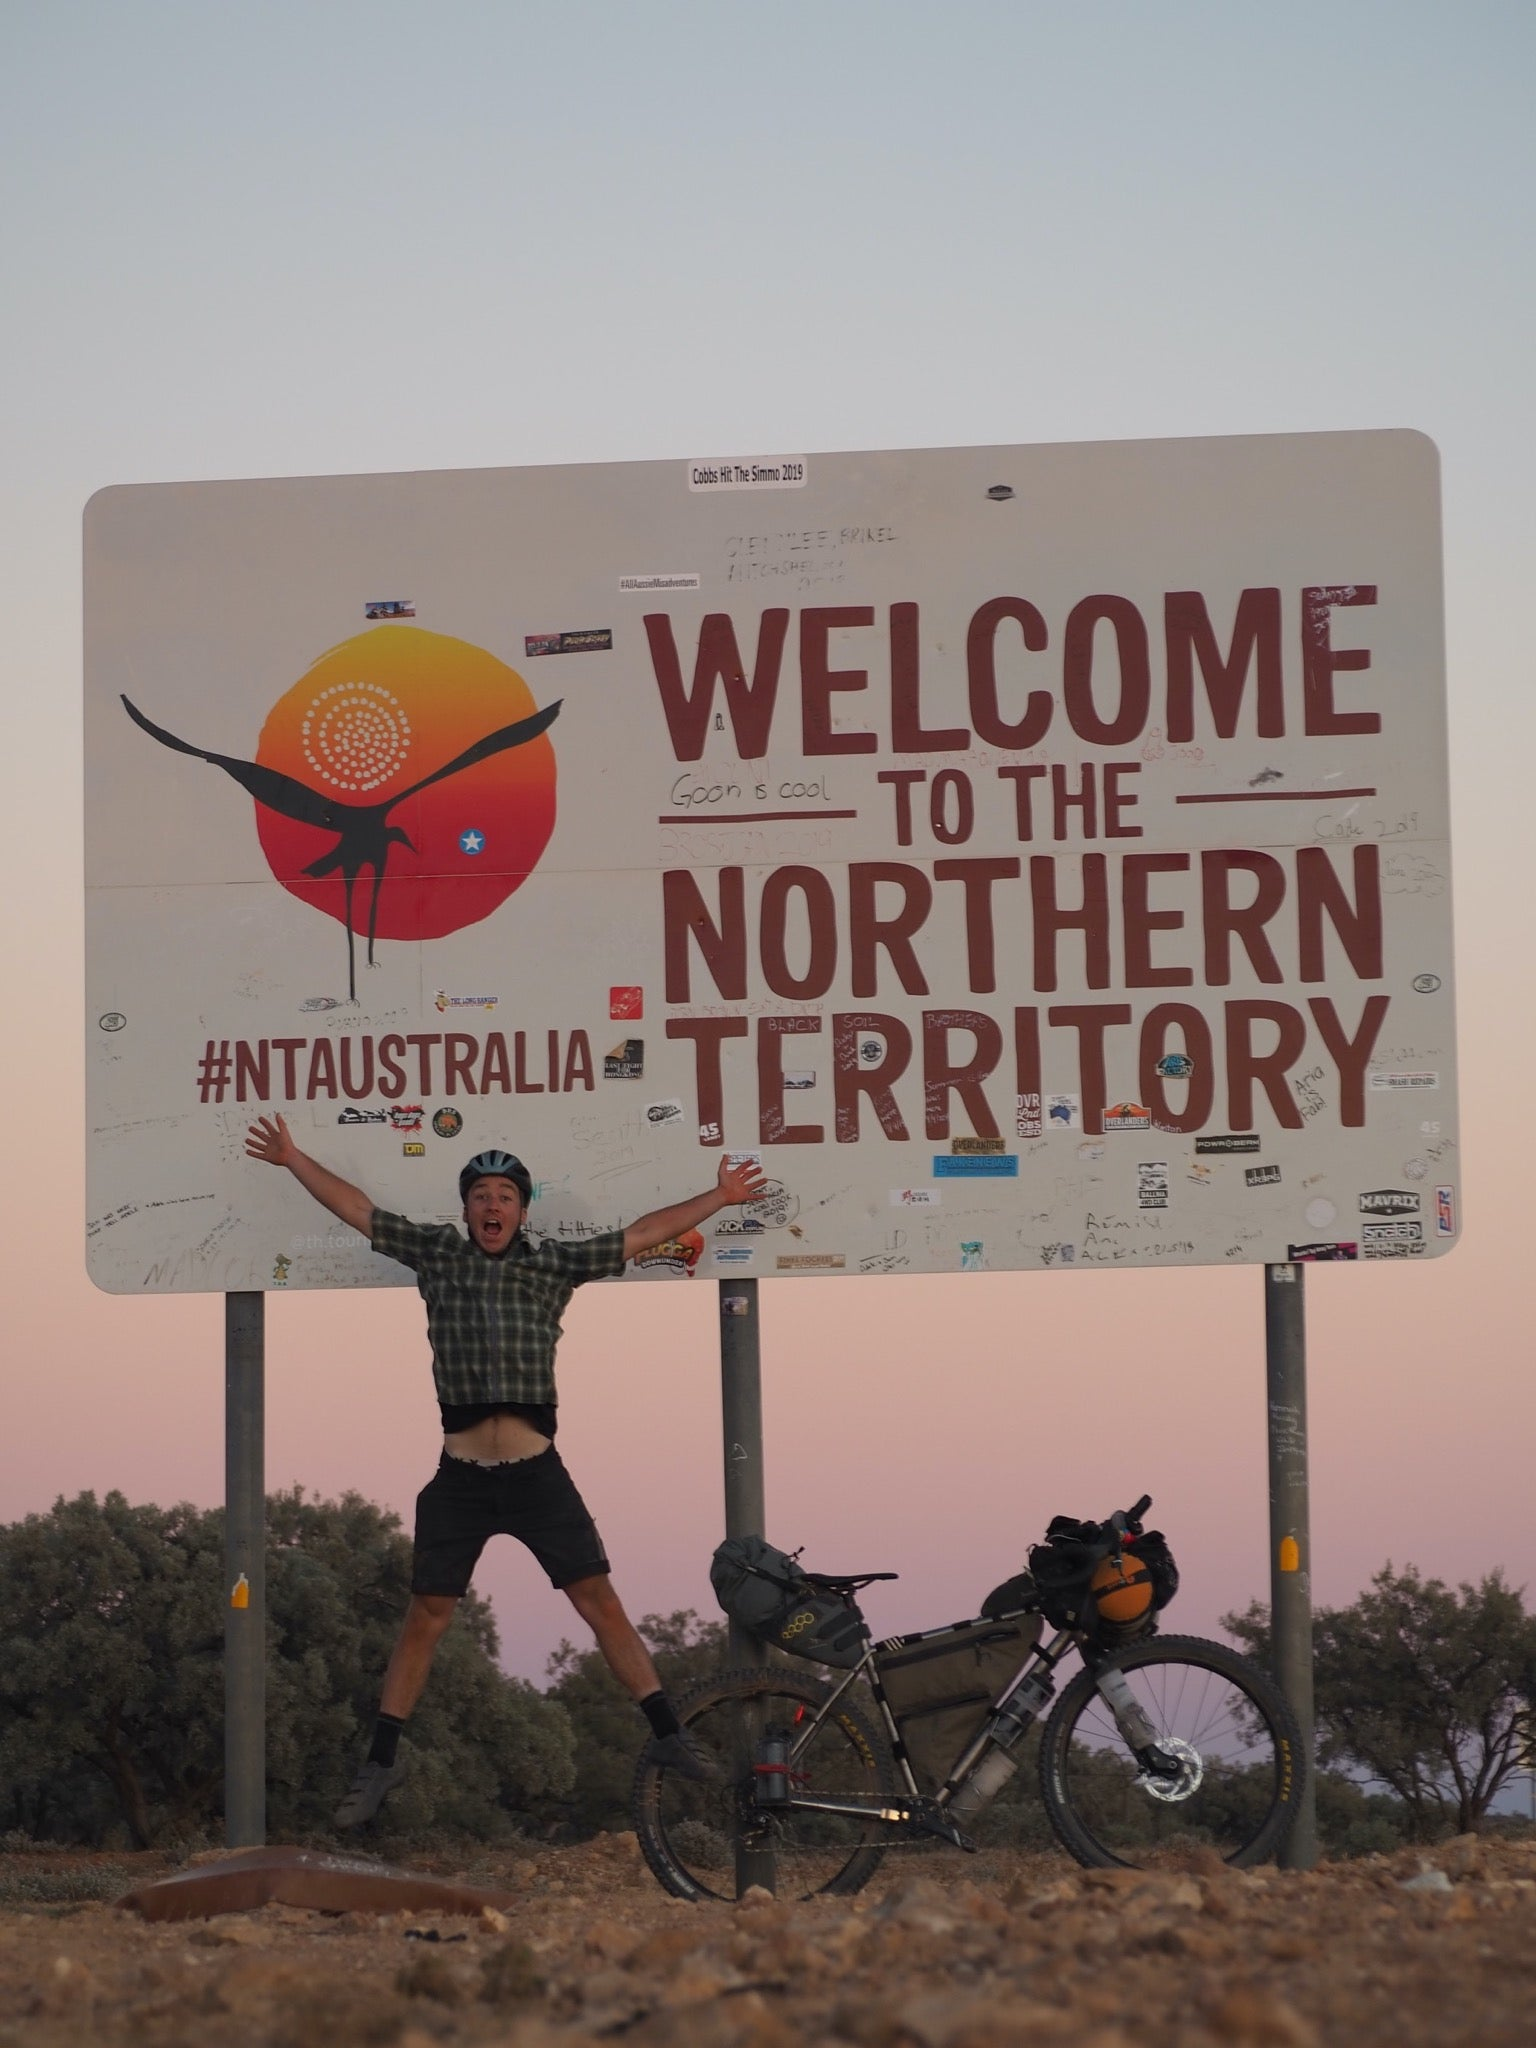 Northern Territory Welcome